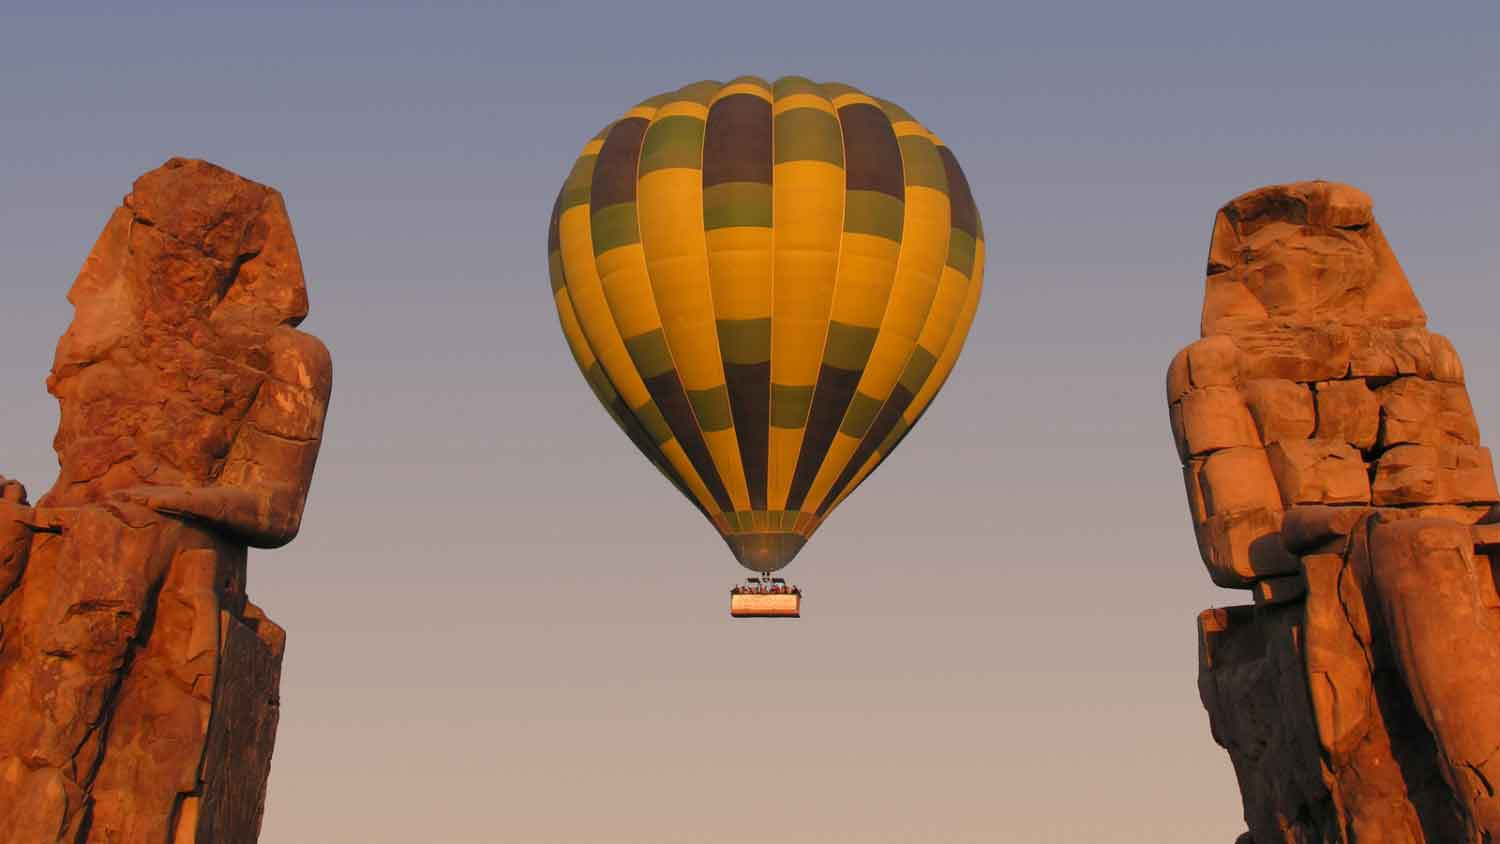 hot-air-balloon-ride-egypt-3_1 Online Booking Form System on bus tickets, percentage british, is available minbody, mobile touch, system interview, for travelling, perentage british, approval required for, available pretty, up one year, tool icon,